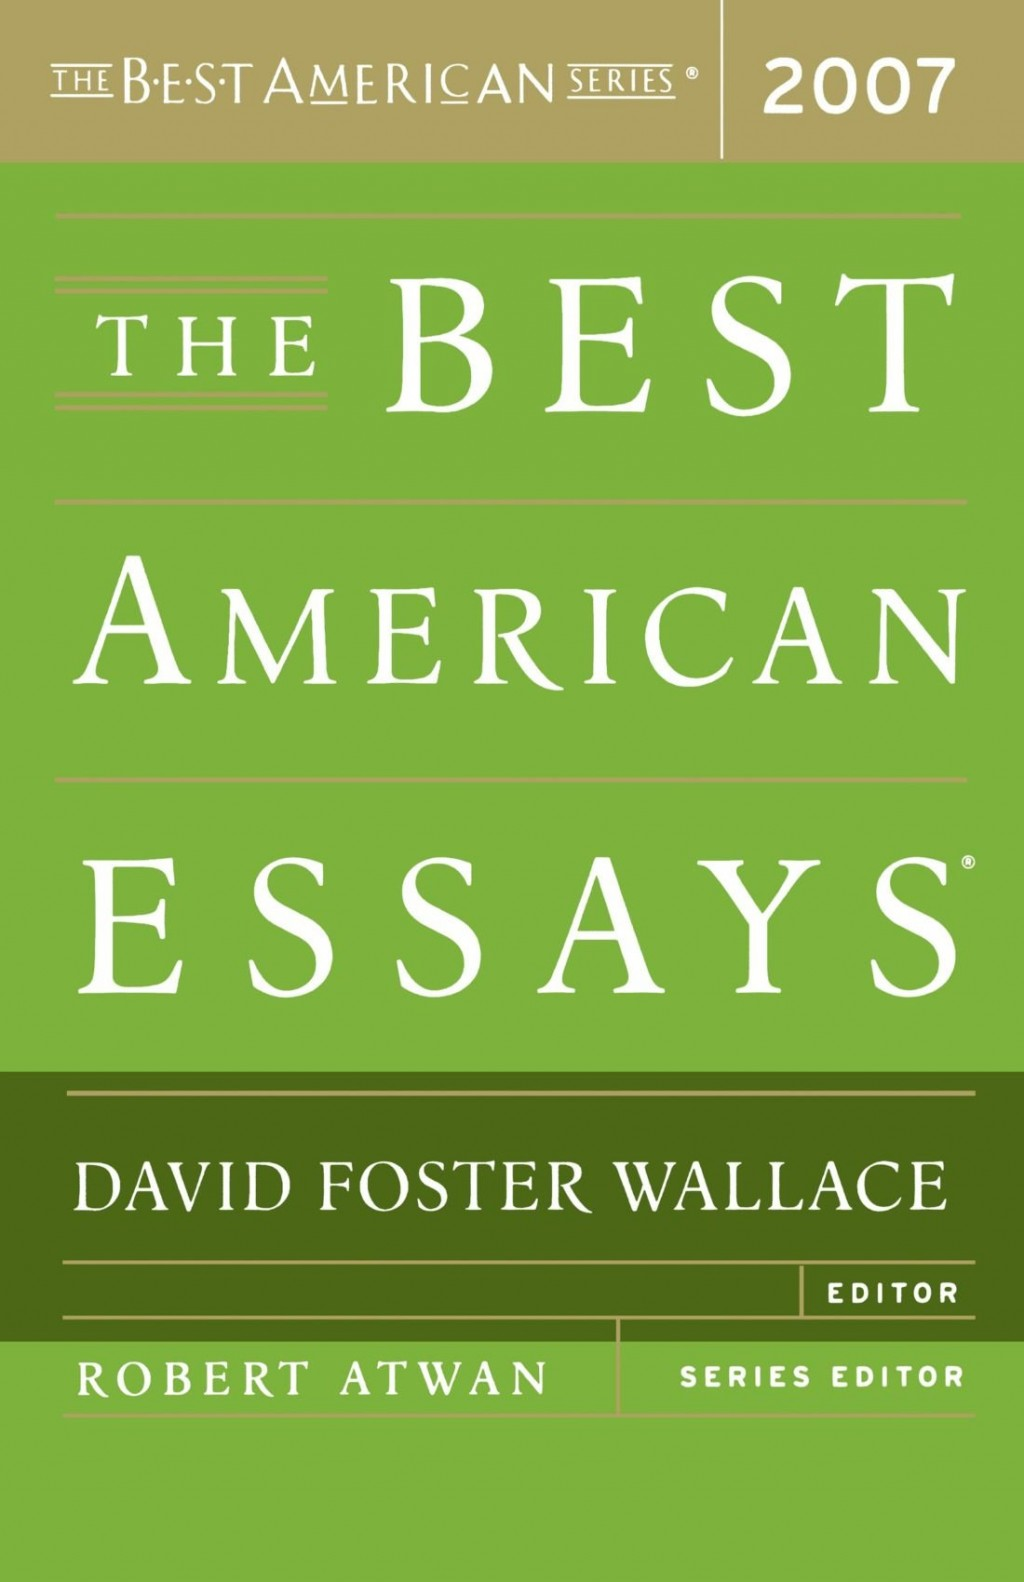 002 Essay Example David Foster Wallace Singular On Federer Essays Ranked Grammar Large